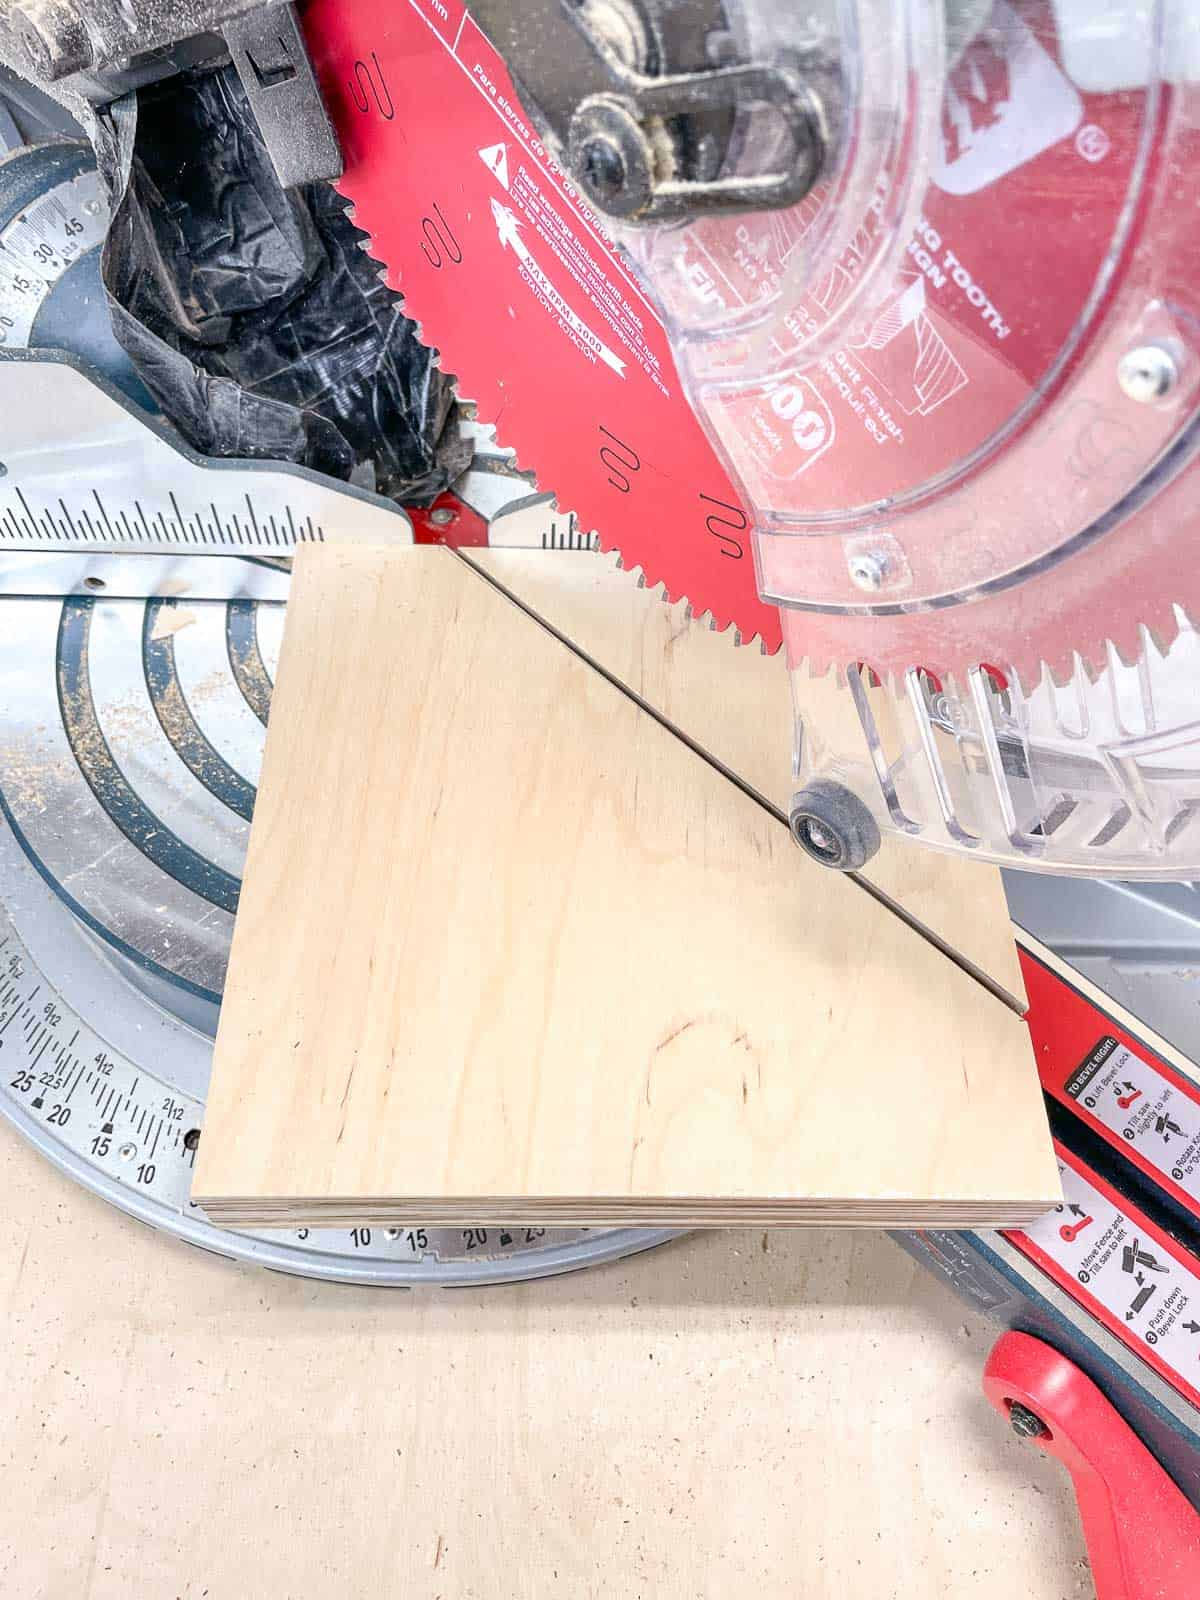 bracket for parallel clamp rack cut on miter saw at 45 degree angle